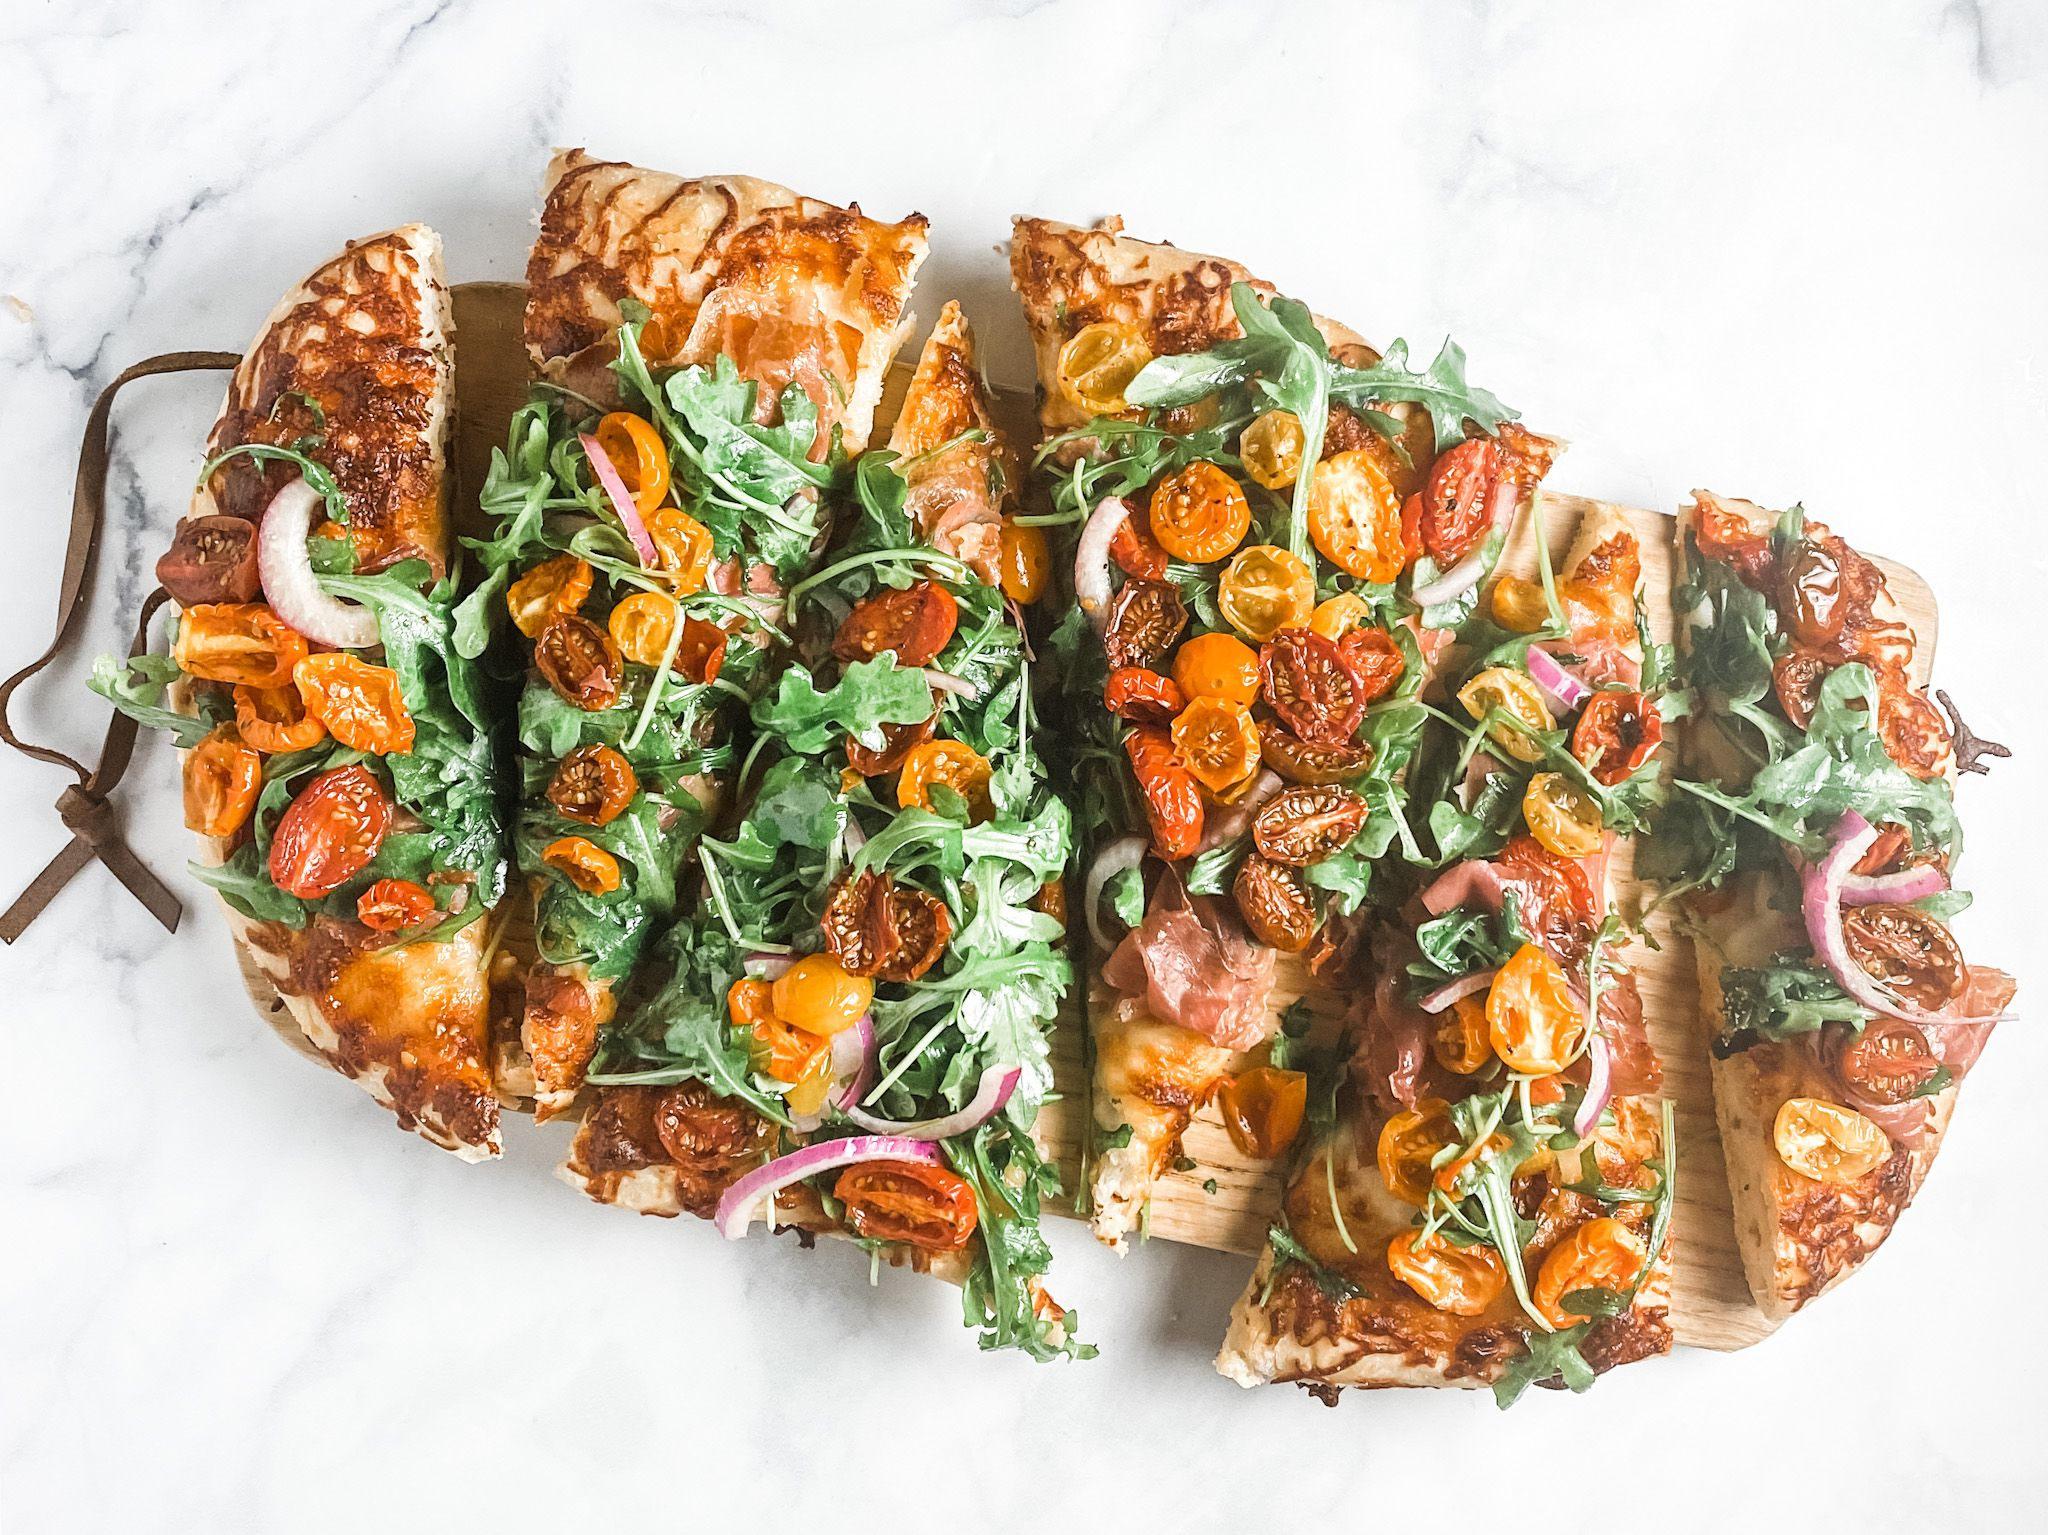 Pregistry's Friday Recipe: Salad Pizza with Oven Roasted Tomatoes